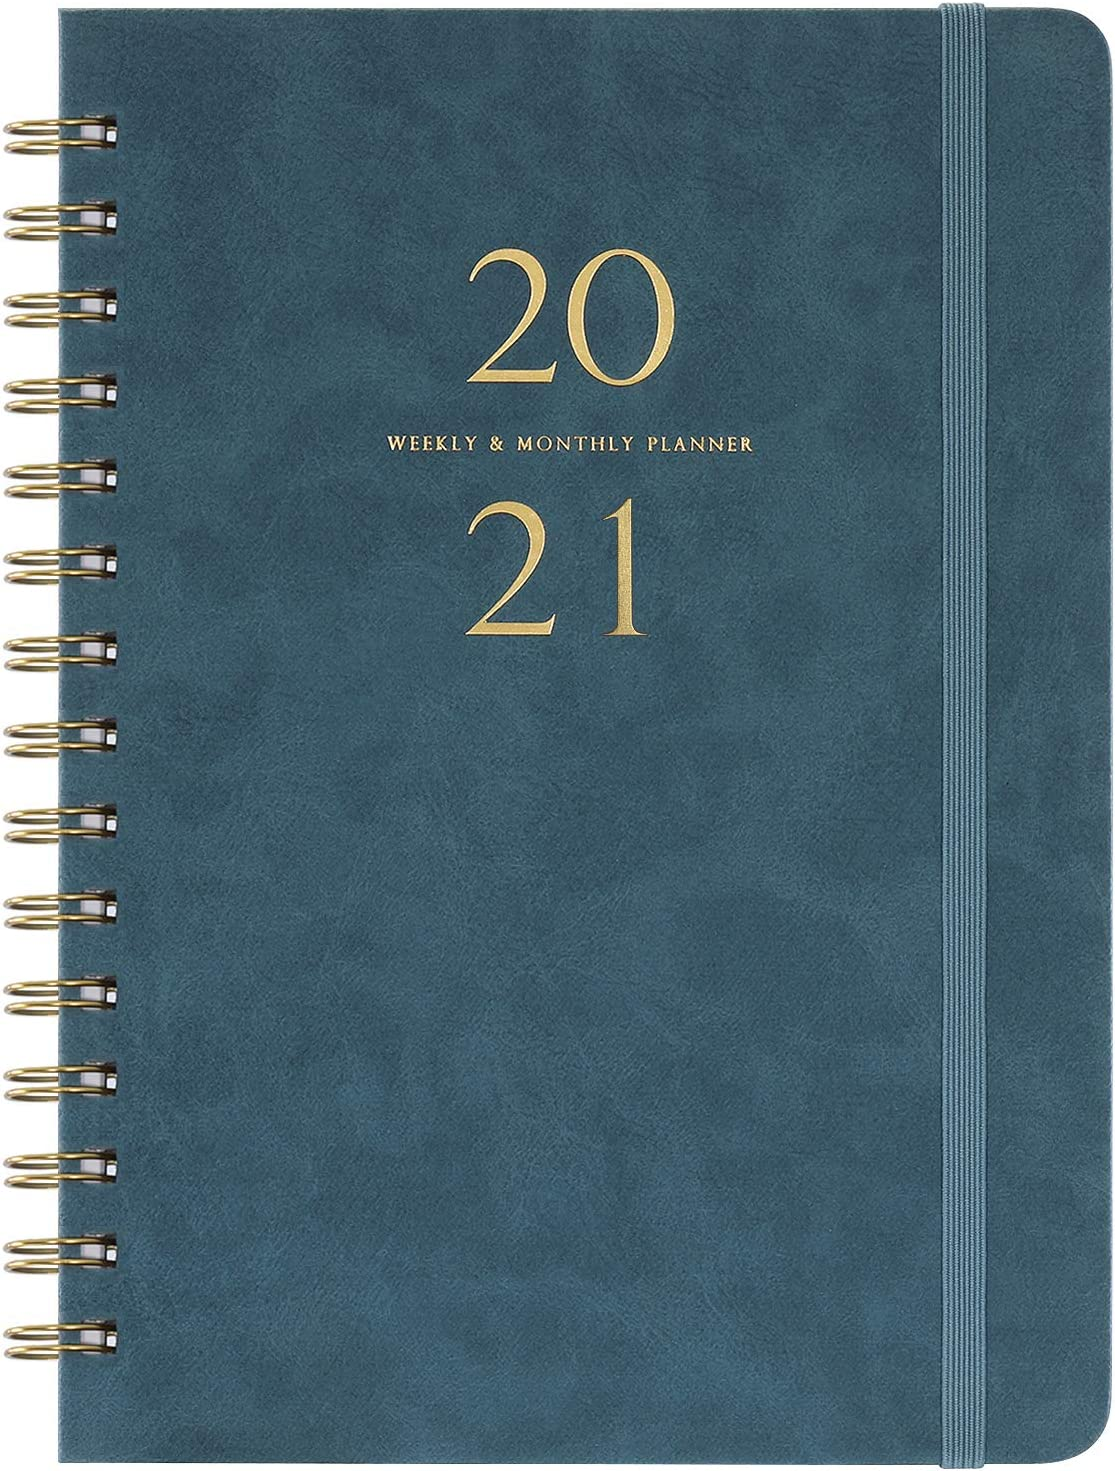 """2020-2021 Planner - Weekly & Monthly Planner with Monthly Tabs, 6.3"""" x 8.4"""", Smooth Faux Leather & Flexible Cover with White Paper, July 2020-June 2021, Wirebound, Green"""